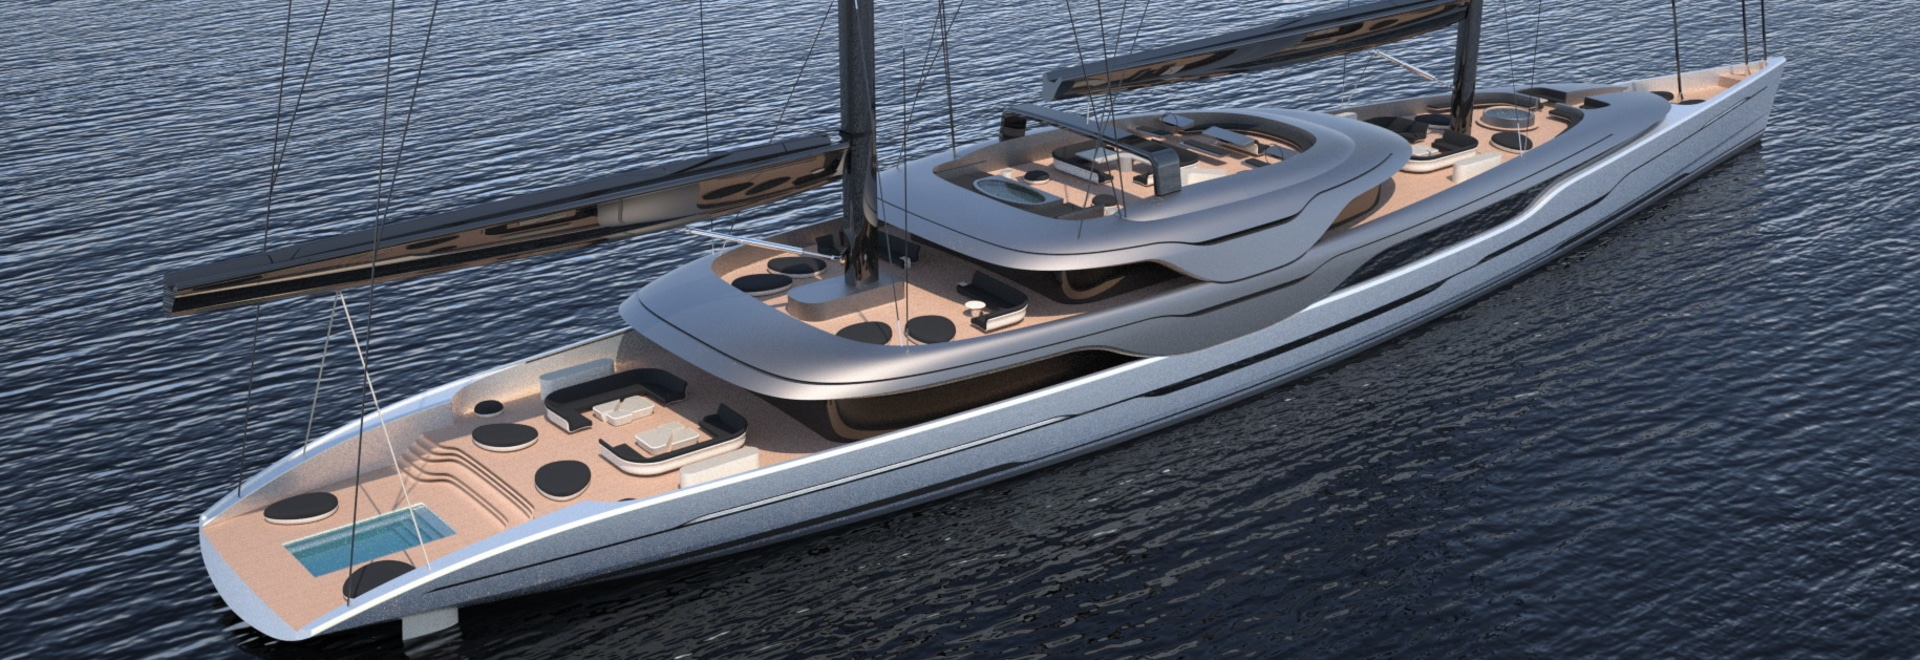 Van Geest and Rob Doyle Design unveil new 93m sailing yacht